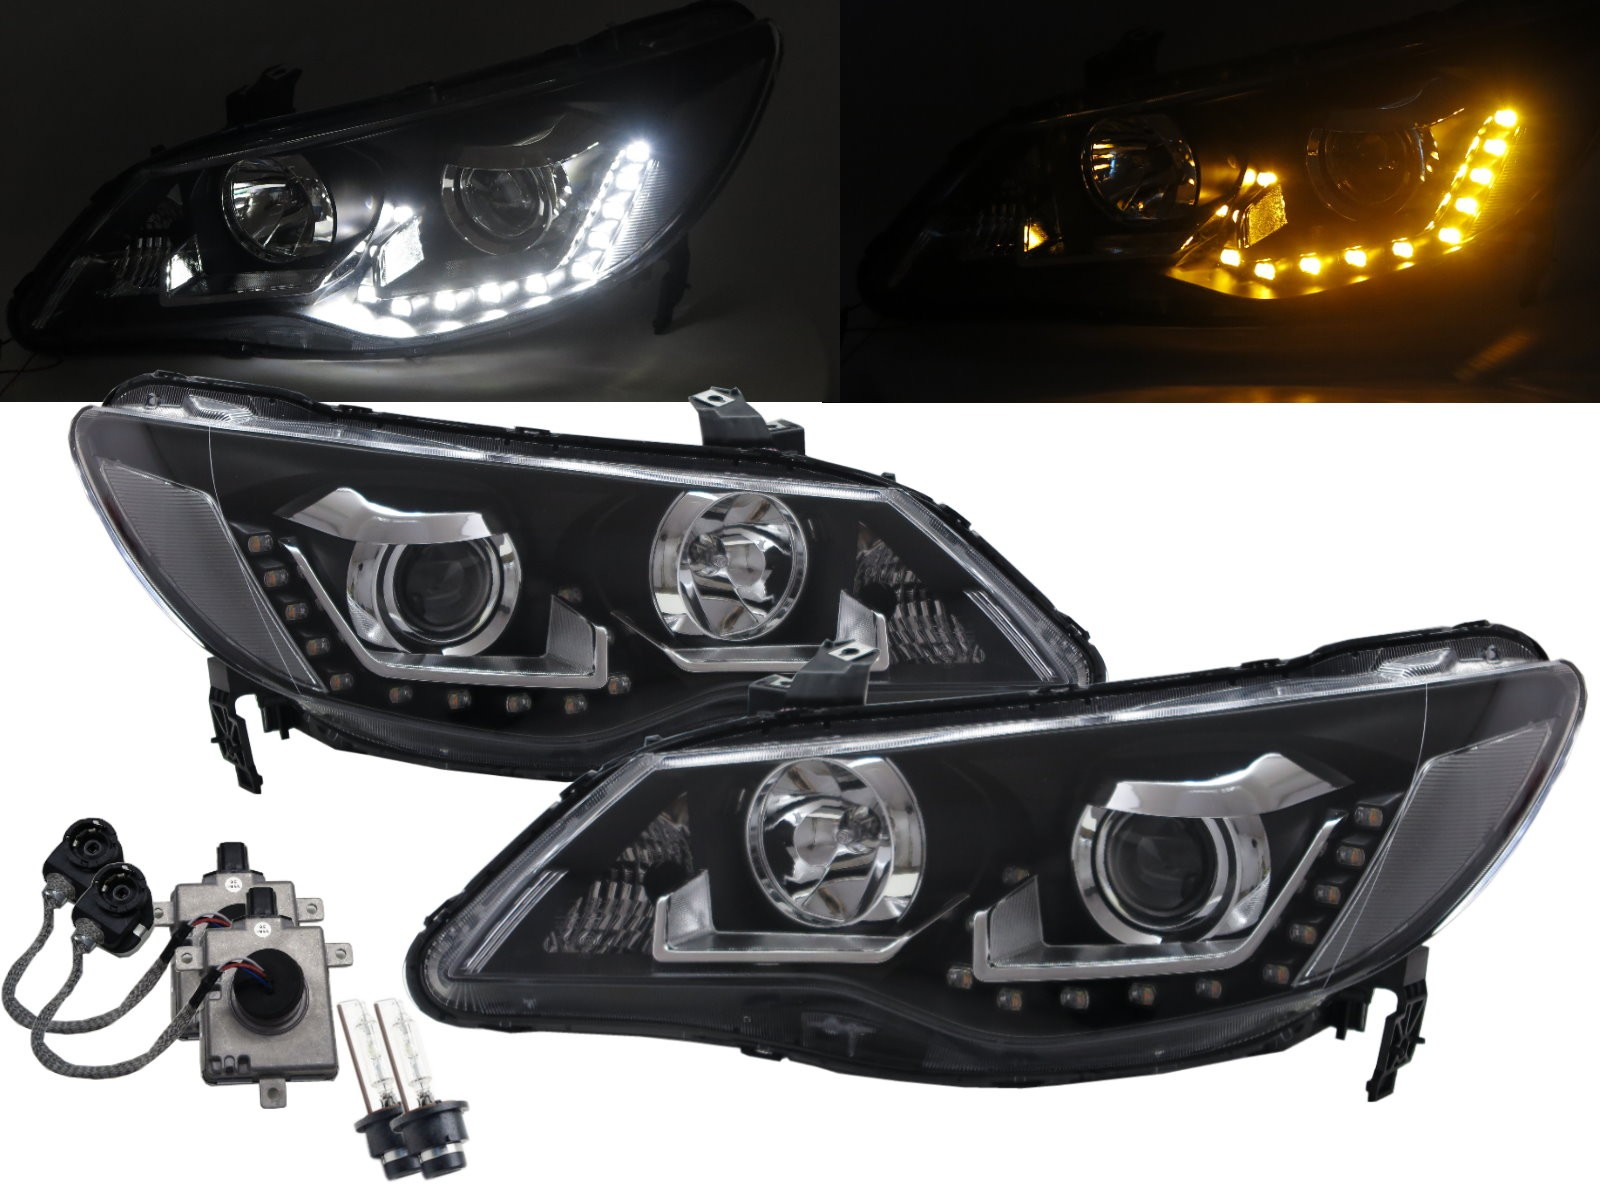 CrazyTheGod CSX 2005-2011 Sedan 4D LED Bar Projector D2S Bulb W/S Ballast Headlight Headlamp Black for ACURA RHD